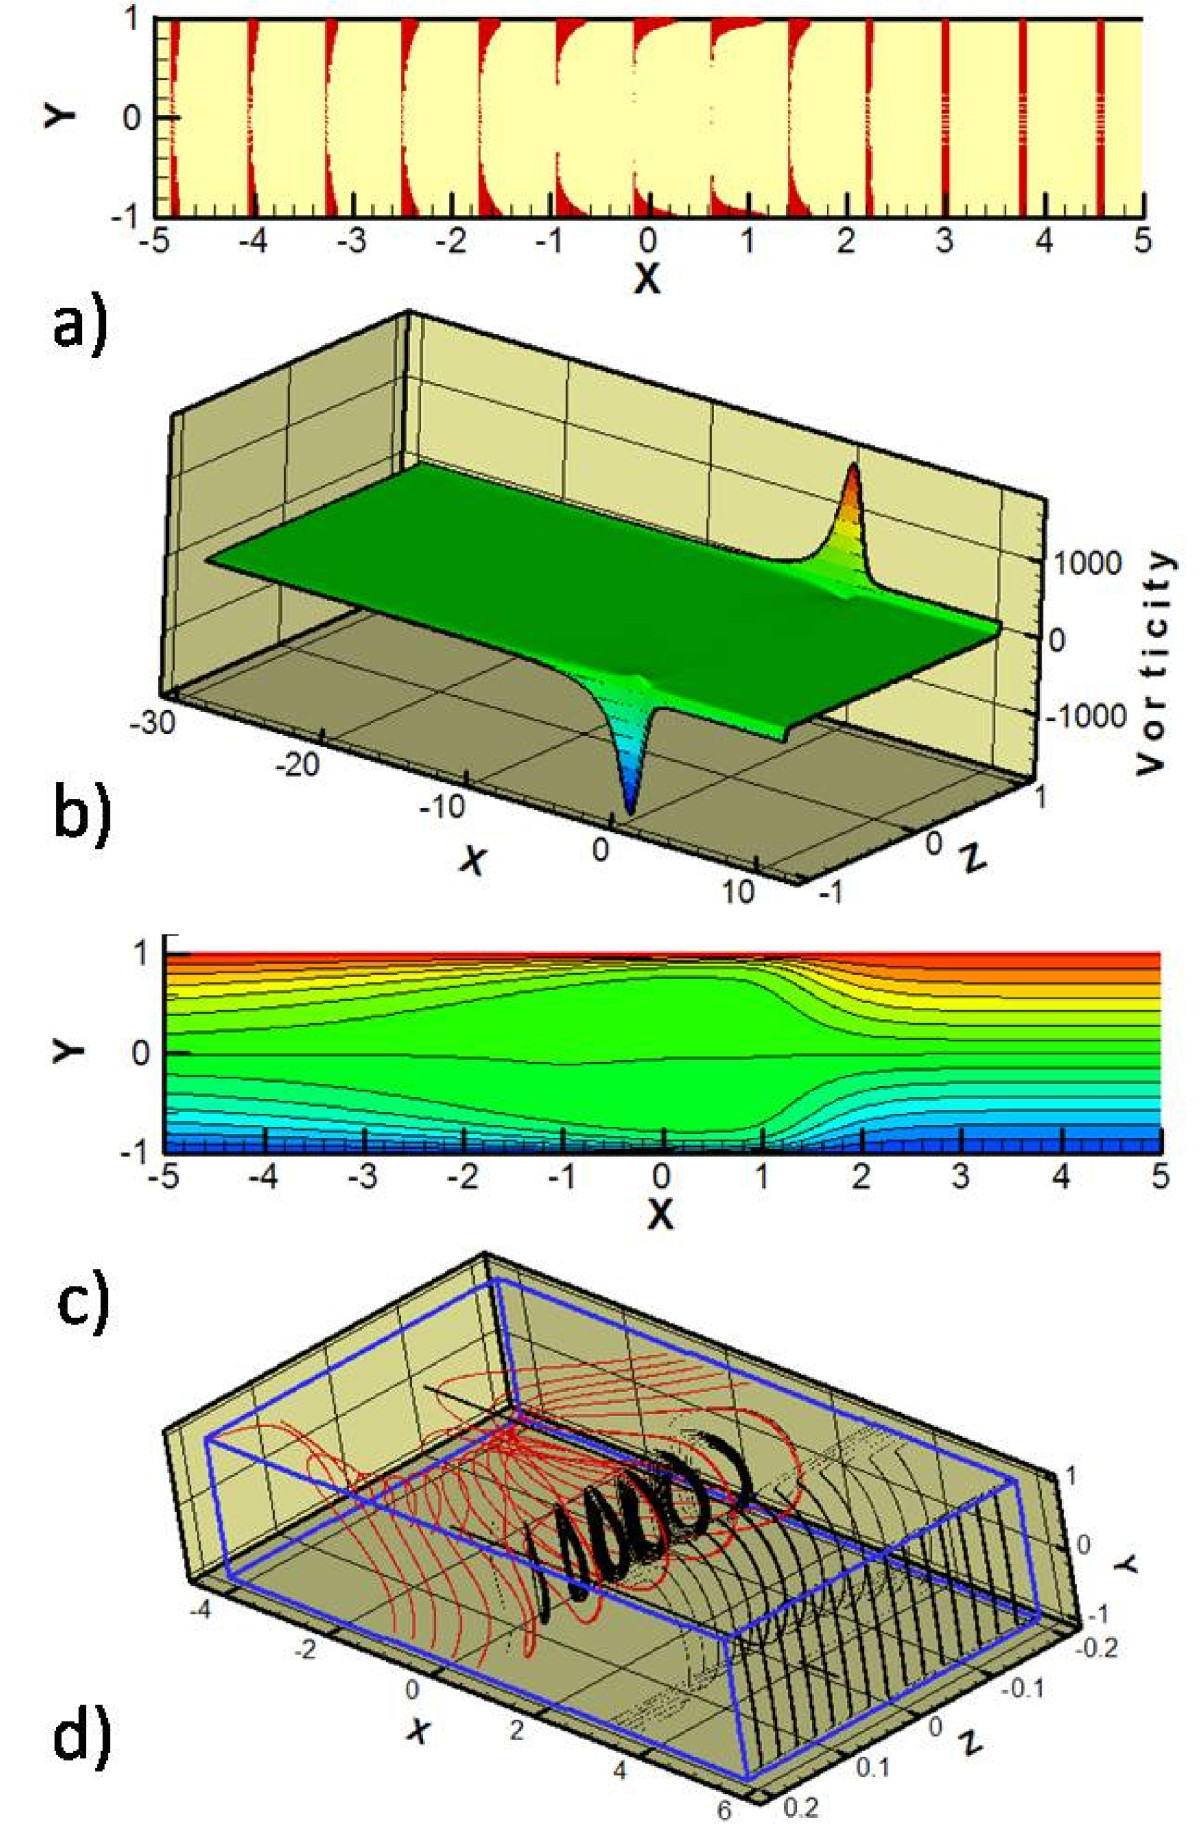 http://static-content.springer.com/image/art%3A10.1186%2F1754-0429-3-3/MediaObjects/13067_2010_Article_26_Fig3_HTML.jpg